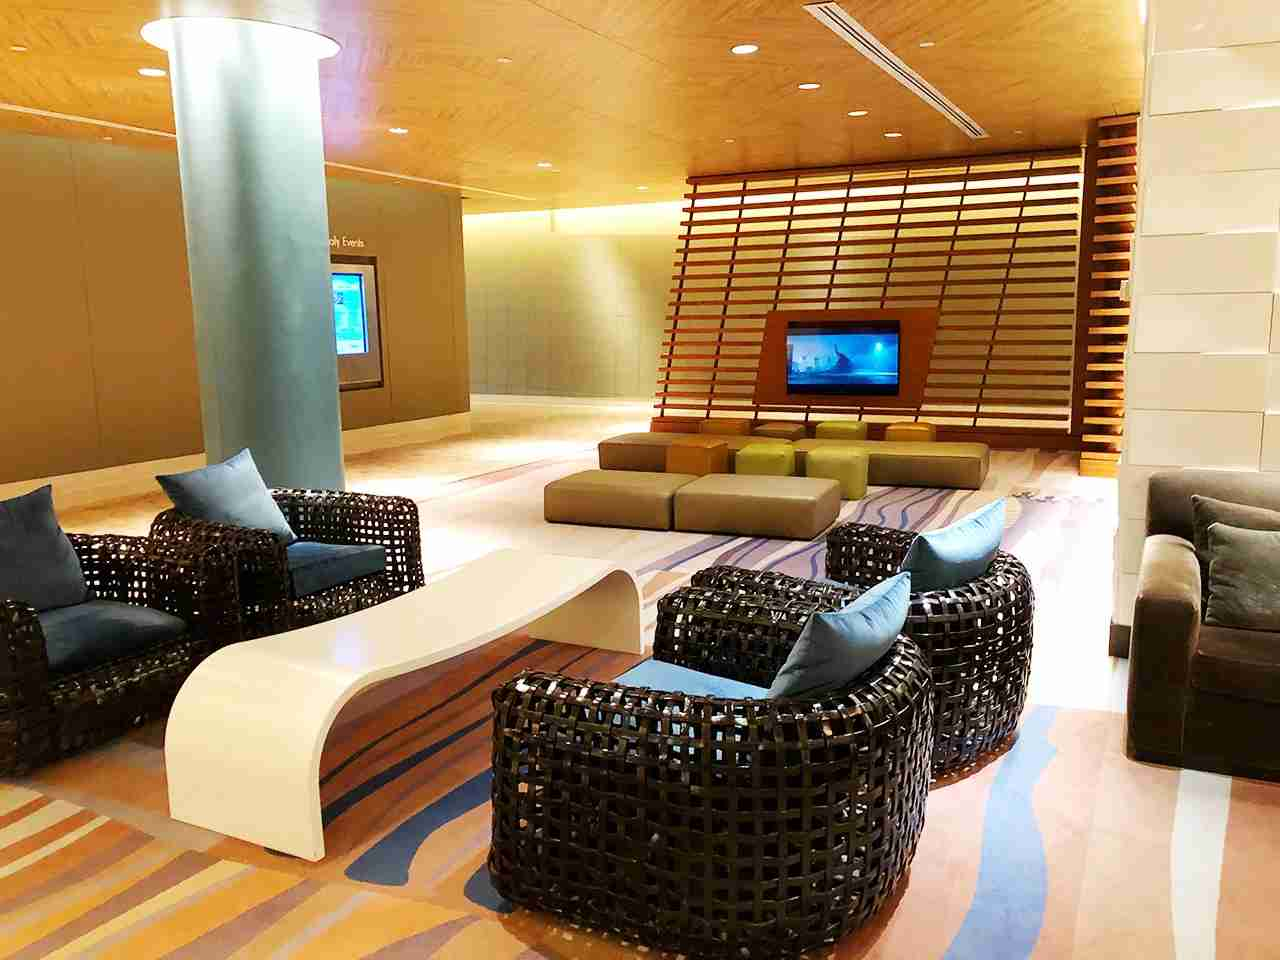 Let the kids watch cartoons while you check-in at the Contemporary